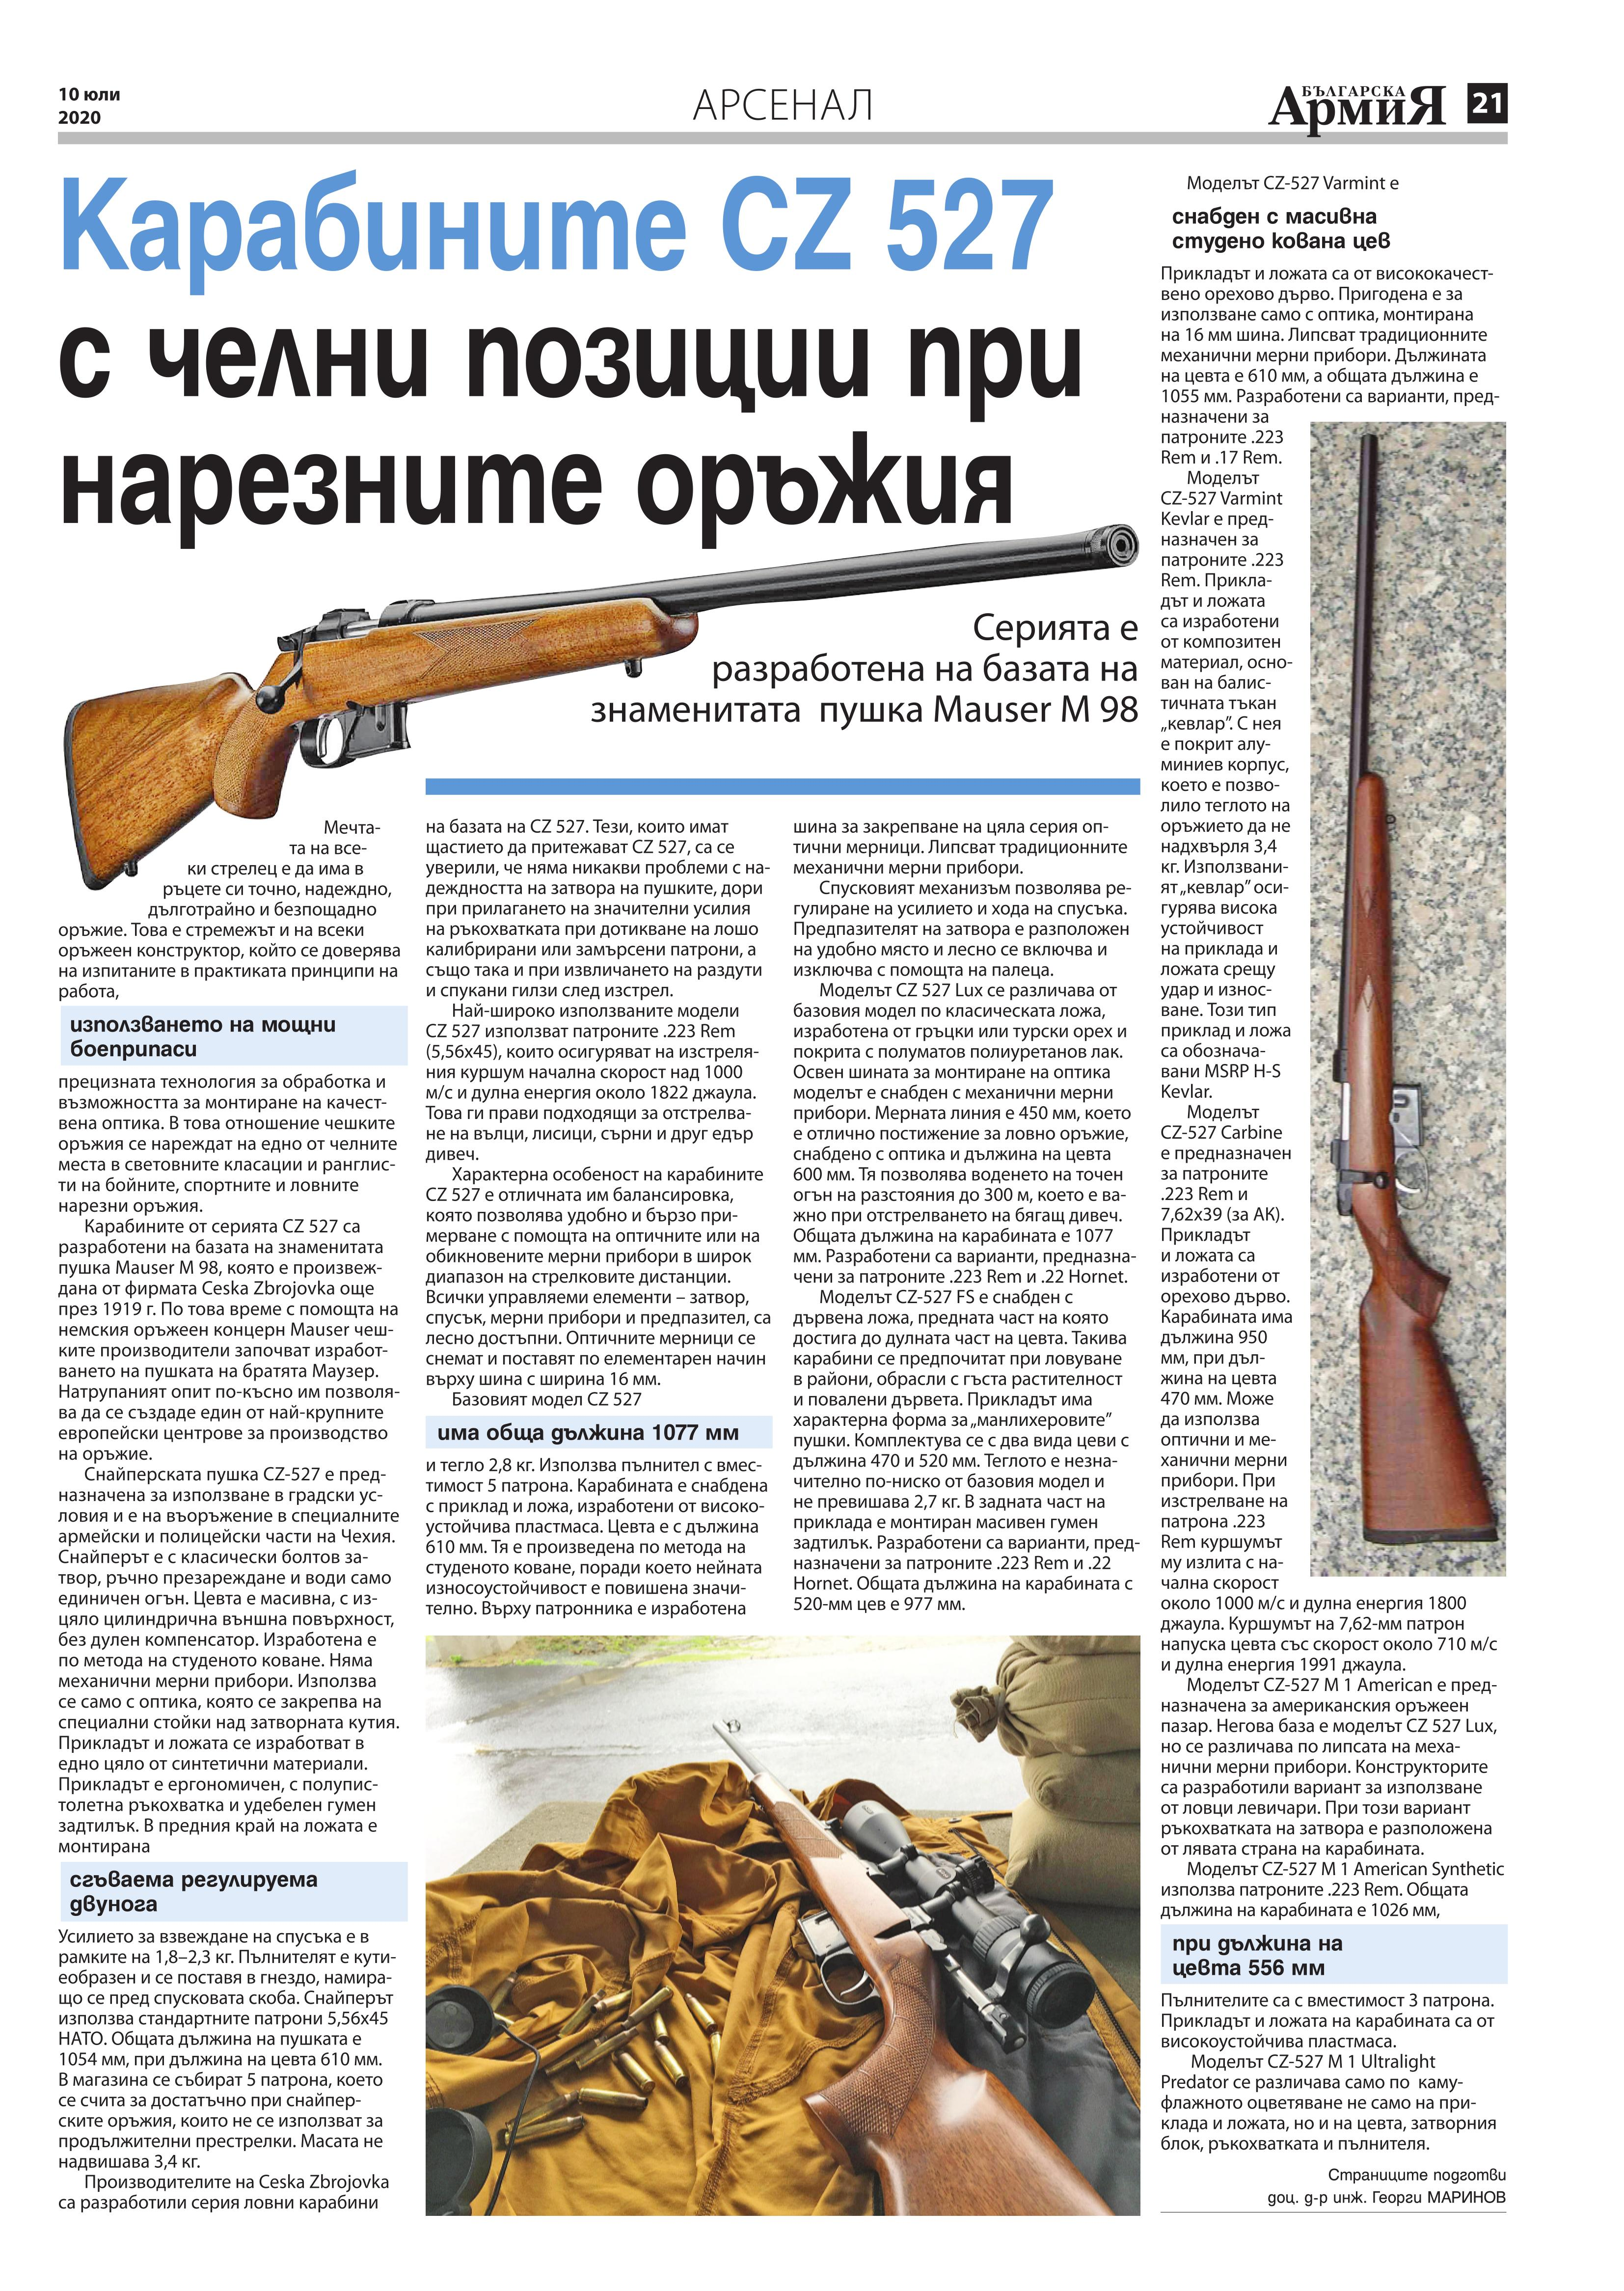 https://armymedia.bg/wp-content/uploads/2015/06/21.page1_-146.jpg